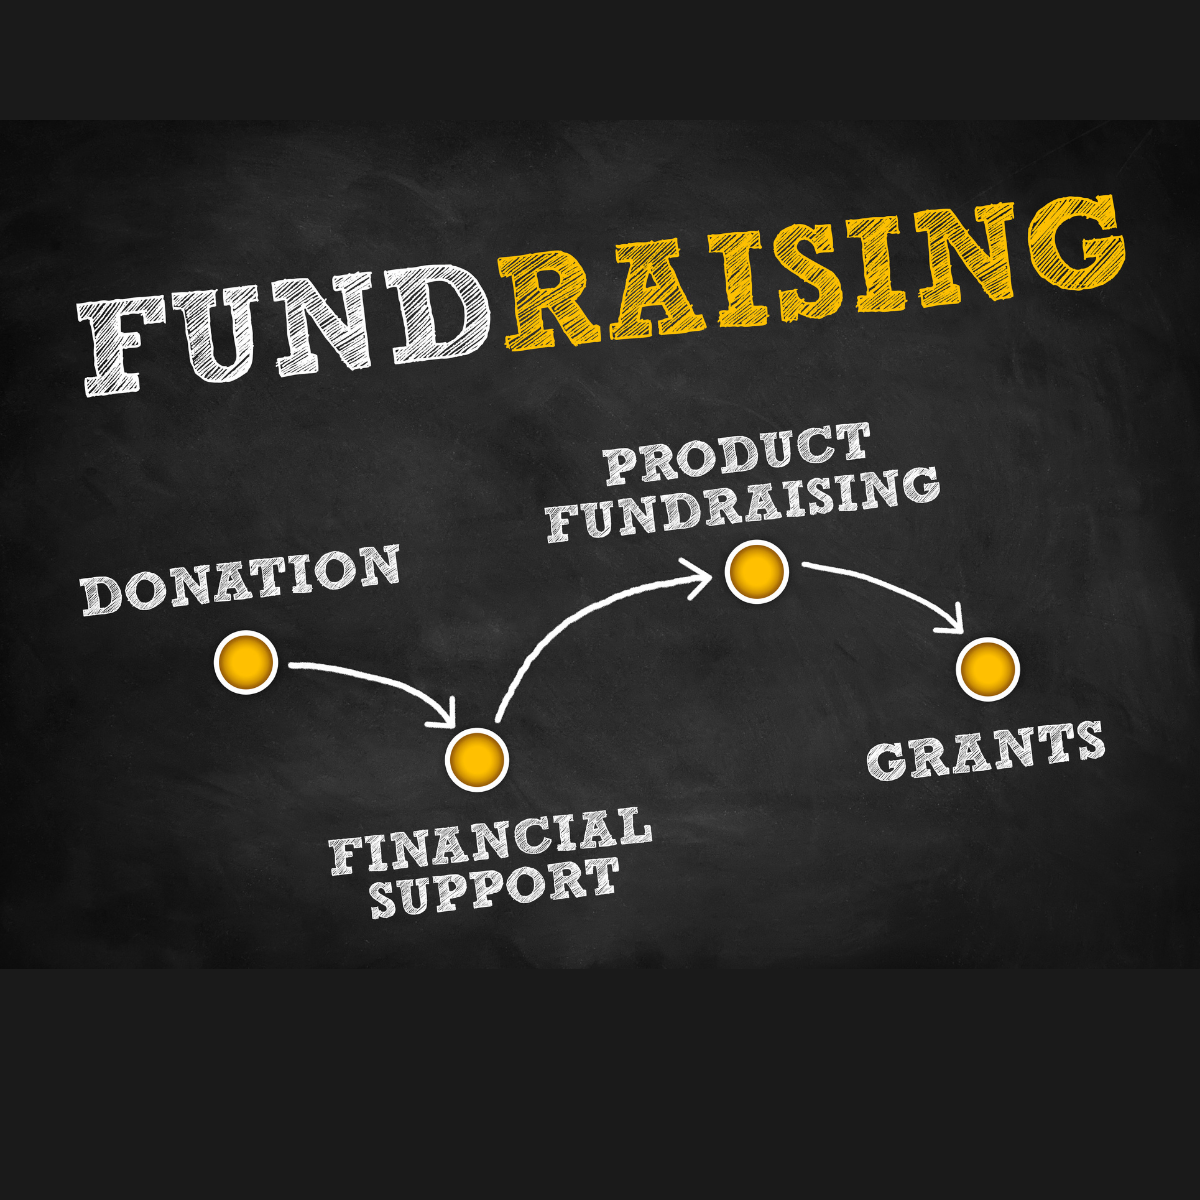 The Fundraising Board